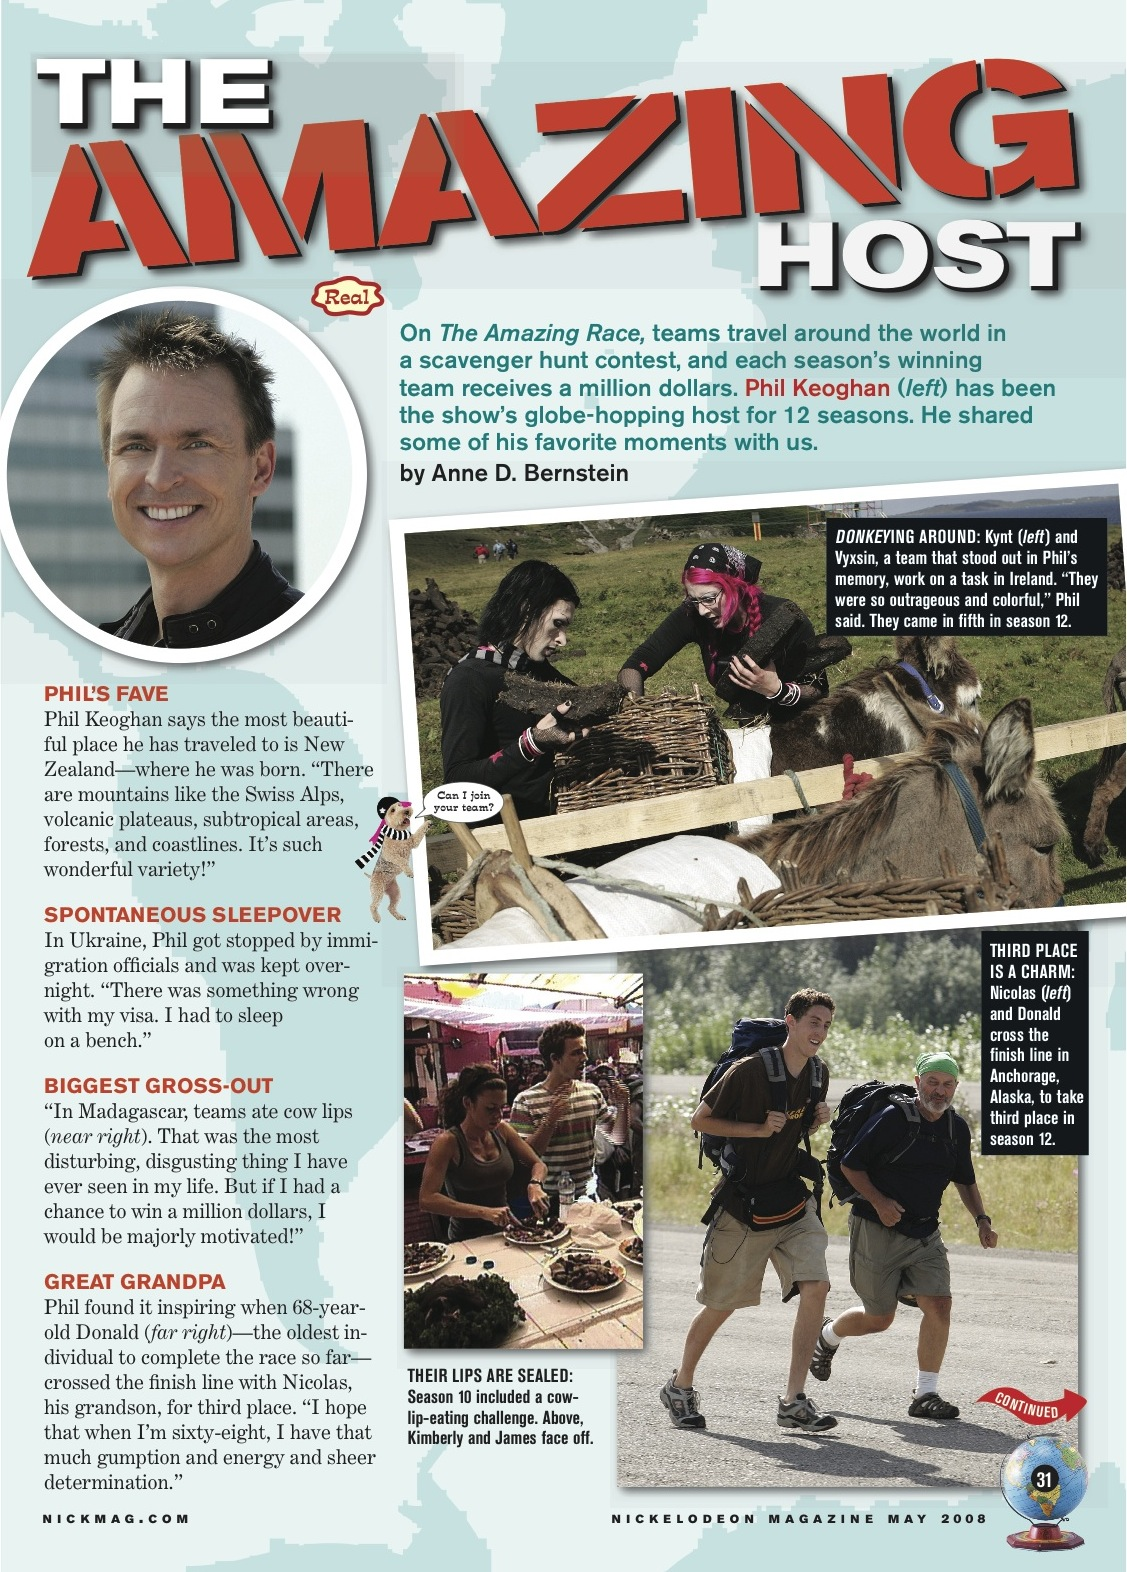 Nickelodeon Magazine_Amazing Race.jpg